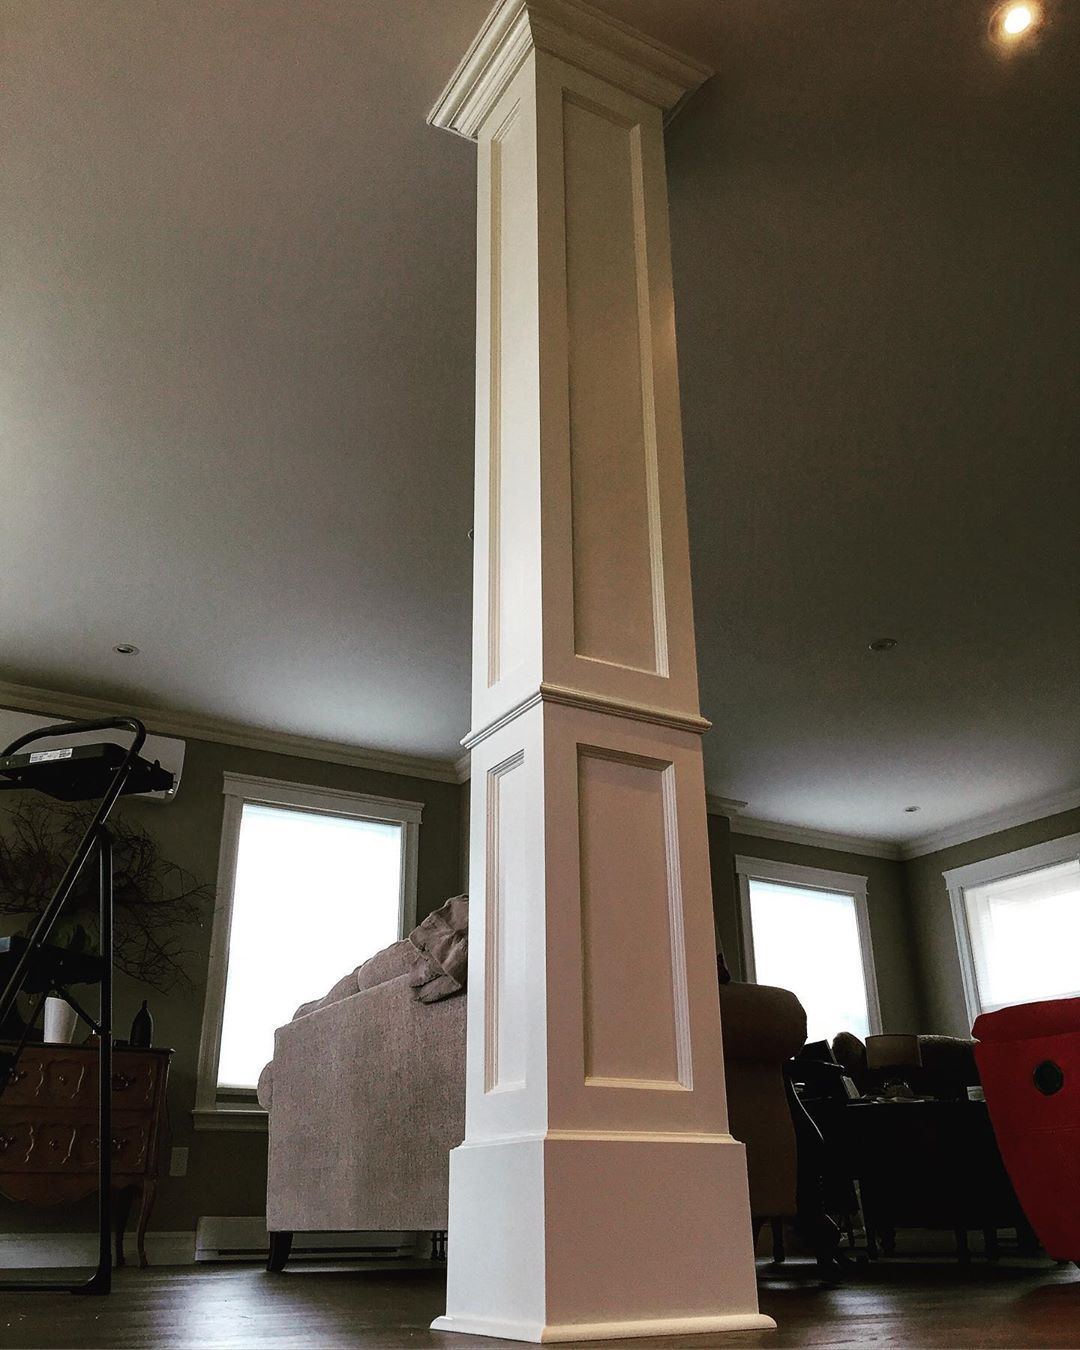 Throwback Thursday! I was asked to trim a load-bearing post so I used MDF to create a colonial look to match the cabinets. Classical cove & bead @freud_tools router bit certainly put to good use on this project! #woodworktrimwork Throwback Thursday! I was asked to trim a load-bearing post so I used MDF to create a colonial look to match the cabinets. Classical cove & bead @freud_tools router bit certainly put to good use on this project! #woodworktrimwork